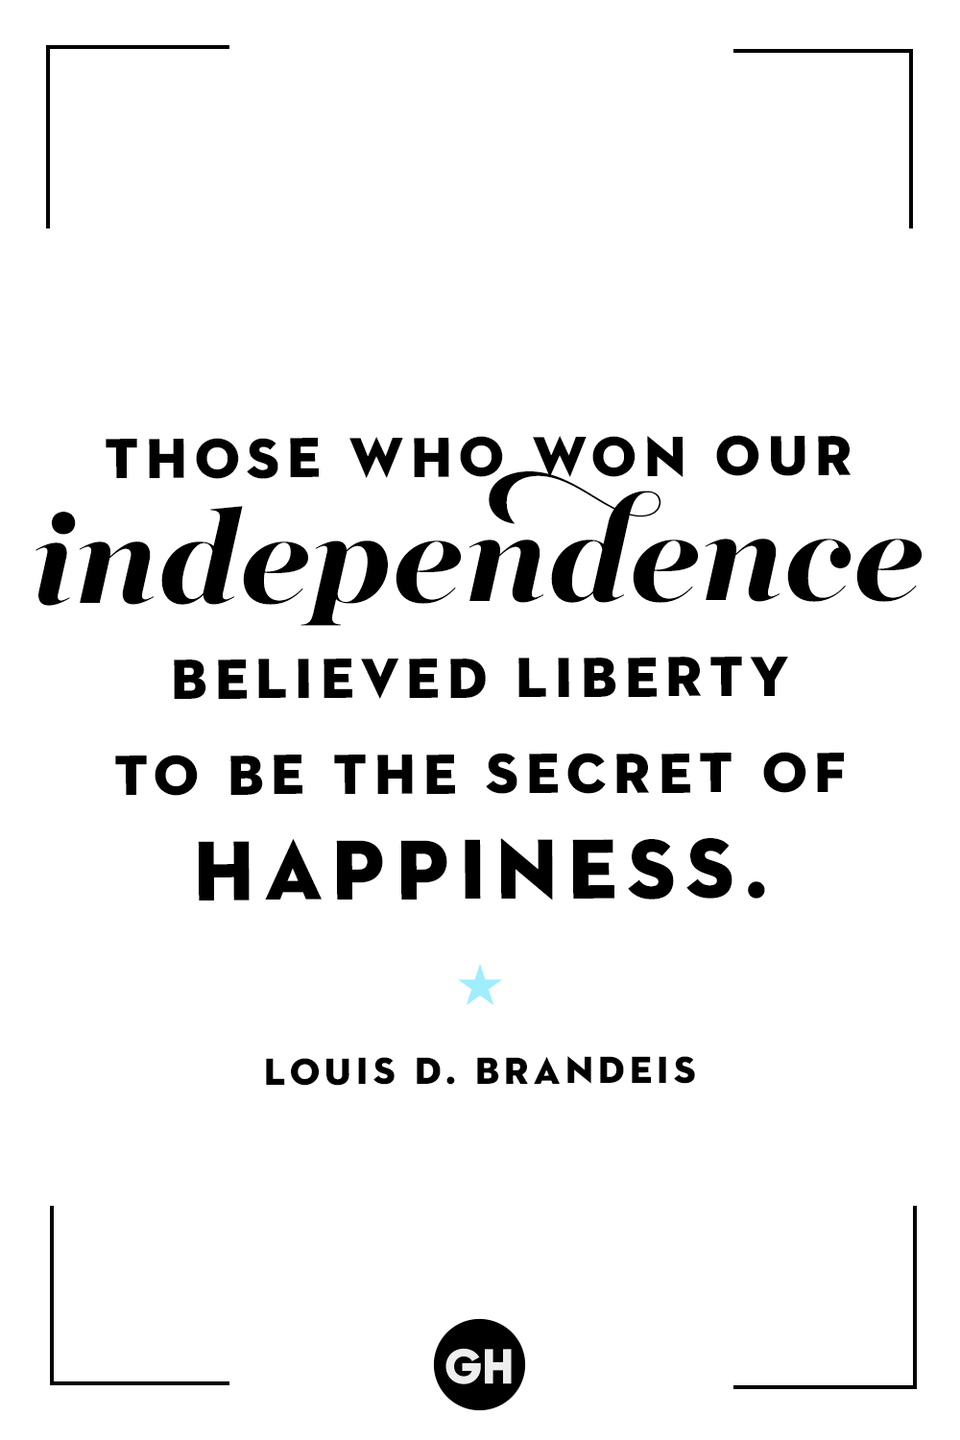 <p>Those who won our independence believed liberty to be the secret of happiness.</p>